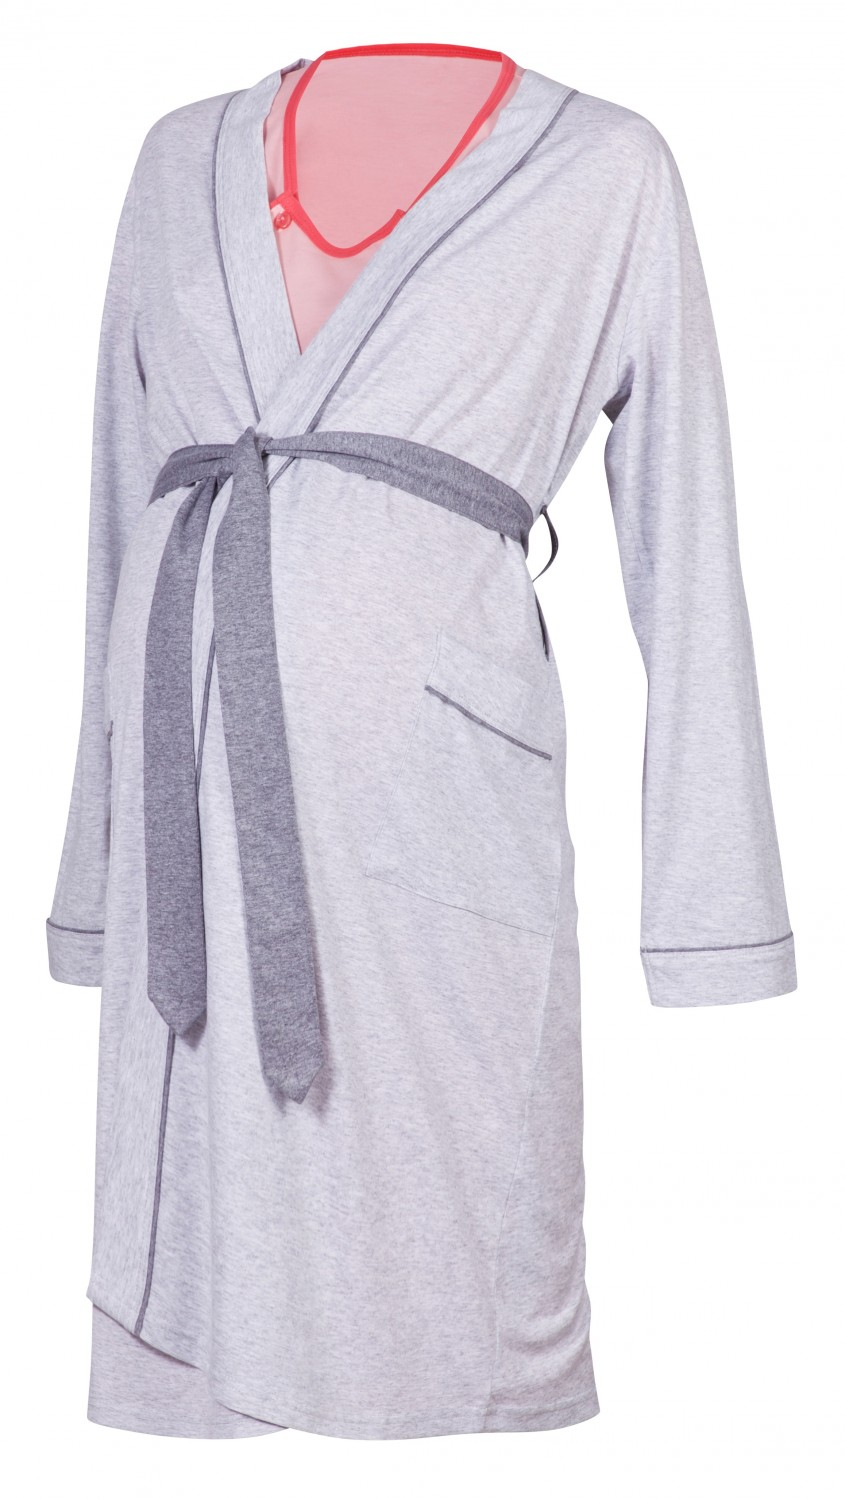 Happy Mama Maternity Gown Robe Nightie for Labour /& Birth Sold Separately 393p Robe - Graphite, UK 8//10, S